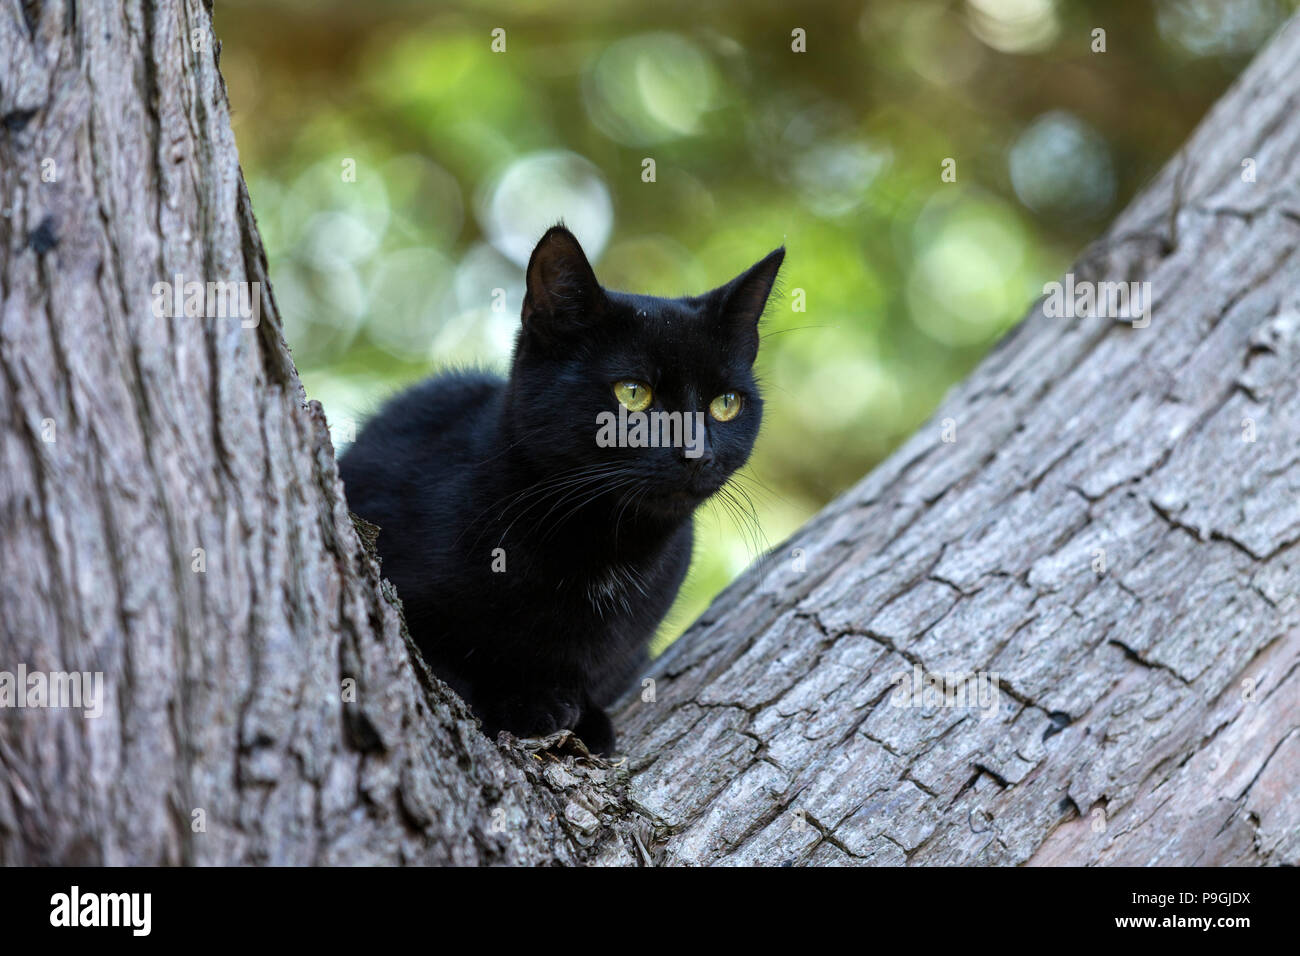 Black cat climbing a tree - between the branches of a Monterey Cyprus tree - Stock Image